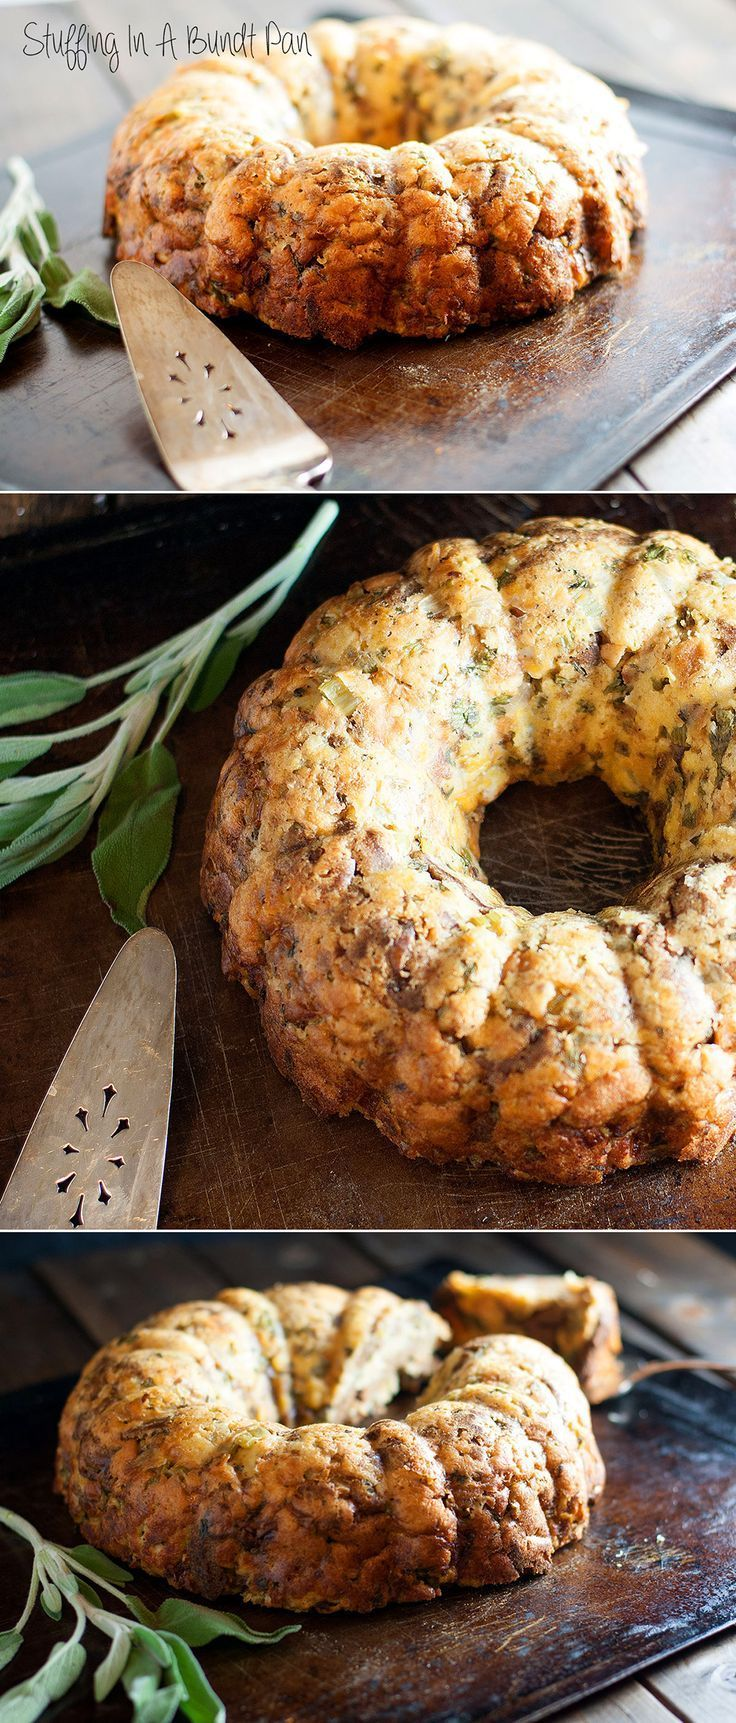 Stuffing in a Bundt Pan food thanksgiving dressing thanksgiving dinner stuffing thanksgiving recipe